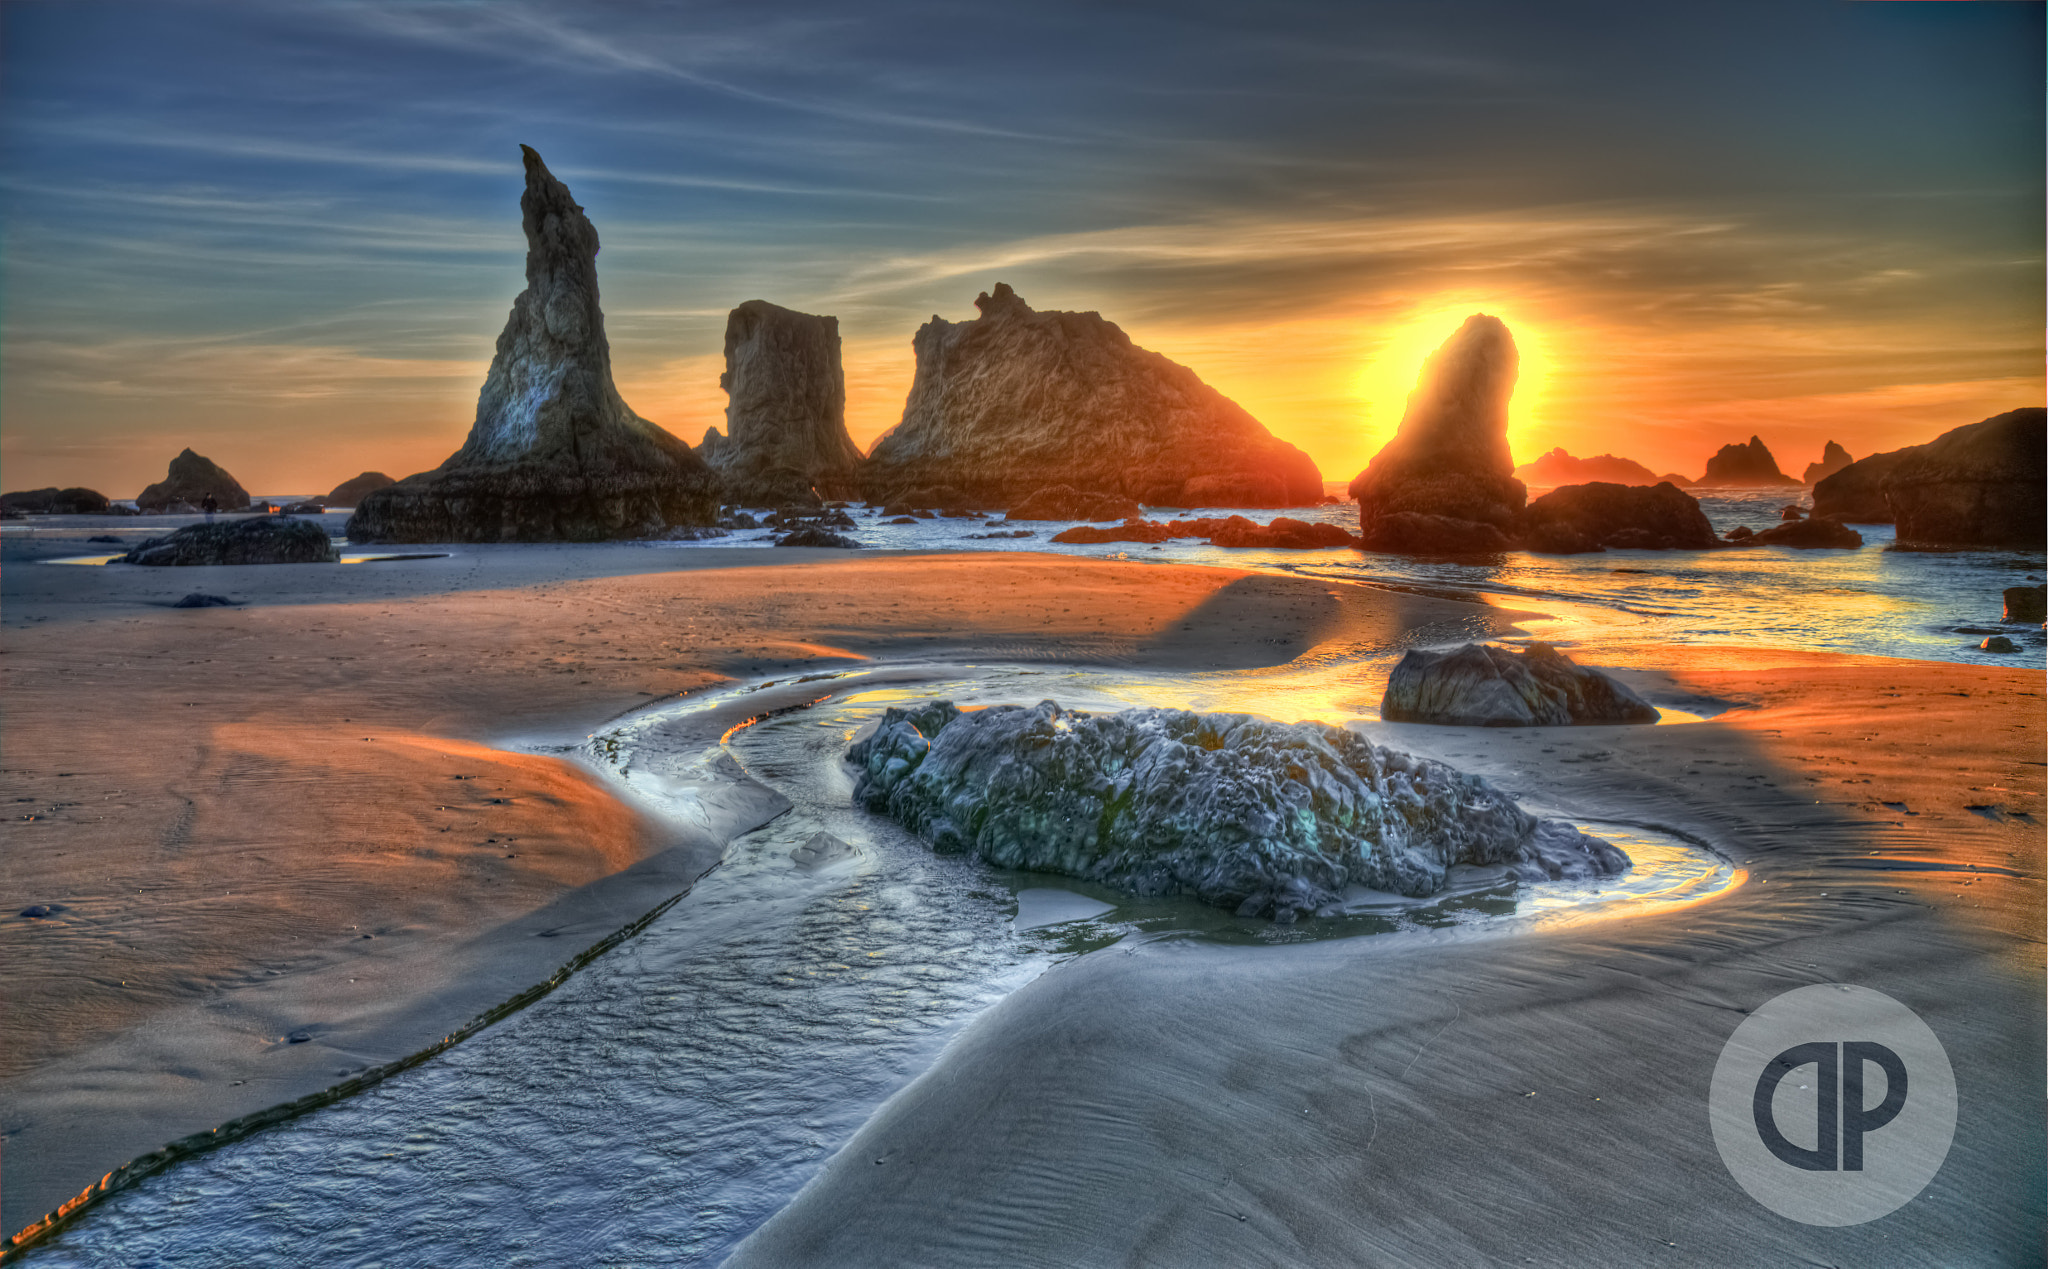 Photograph Sunset in Bandon by Dutta Photography on 500px